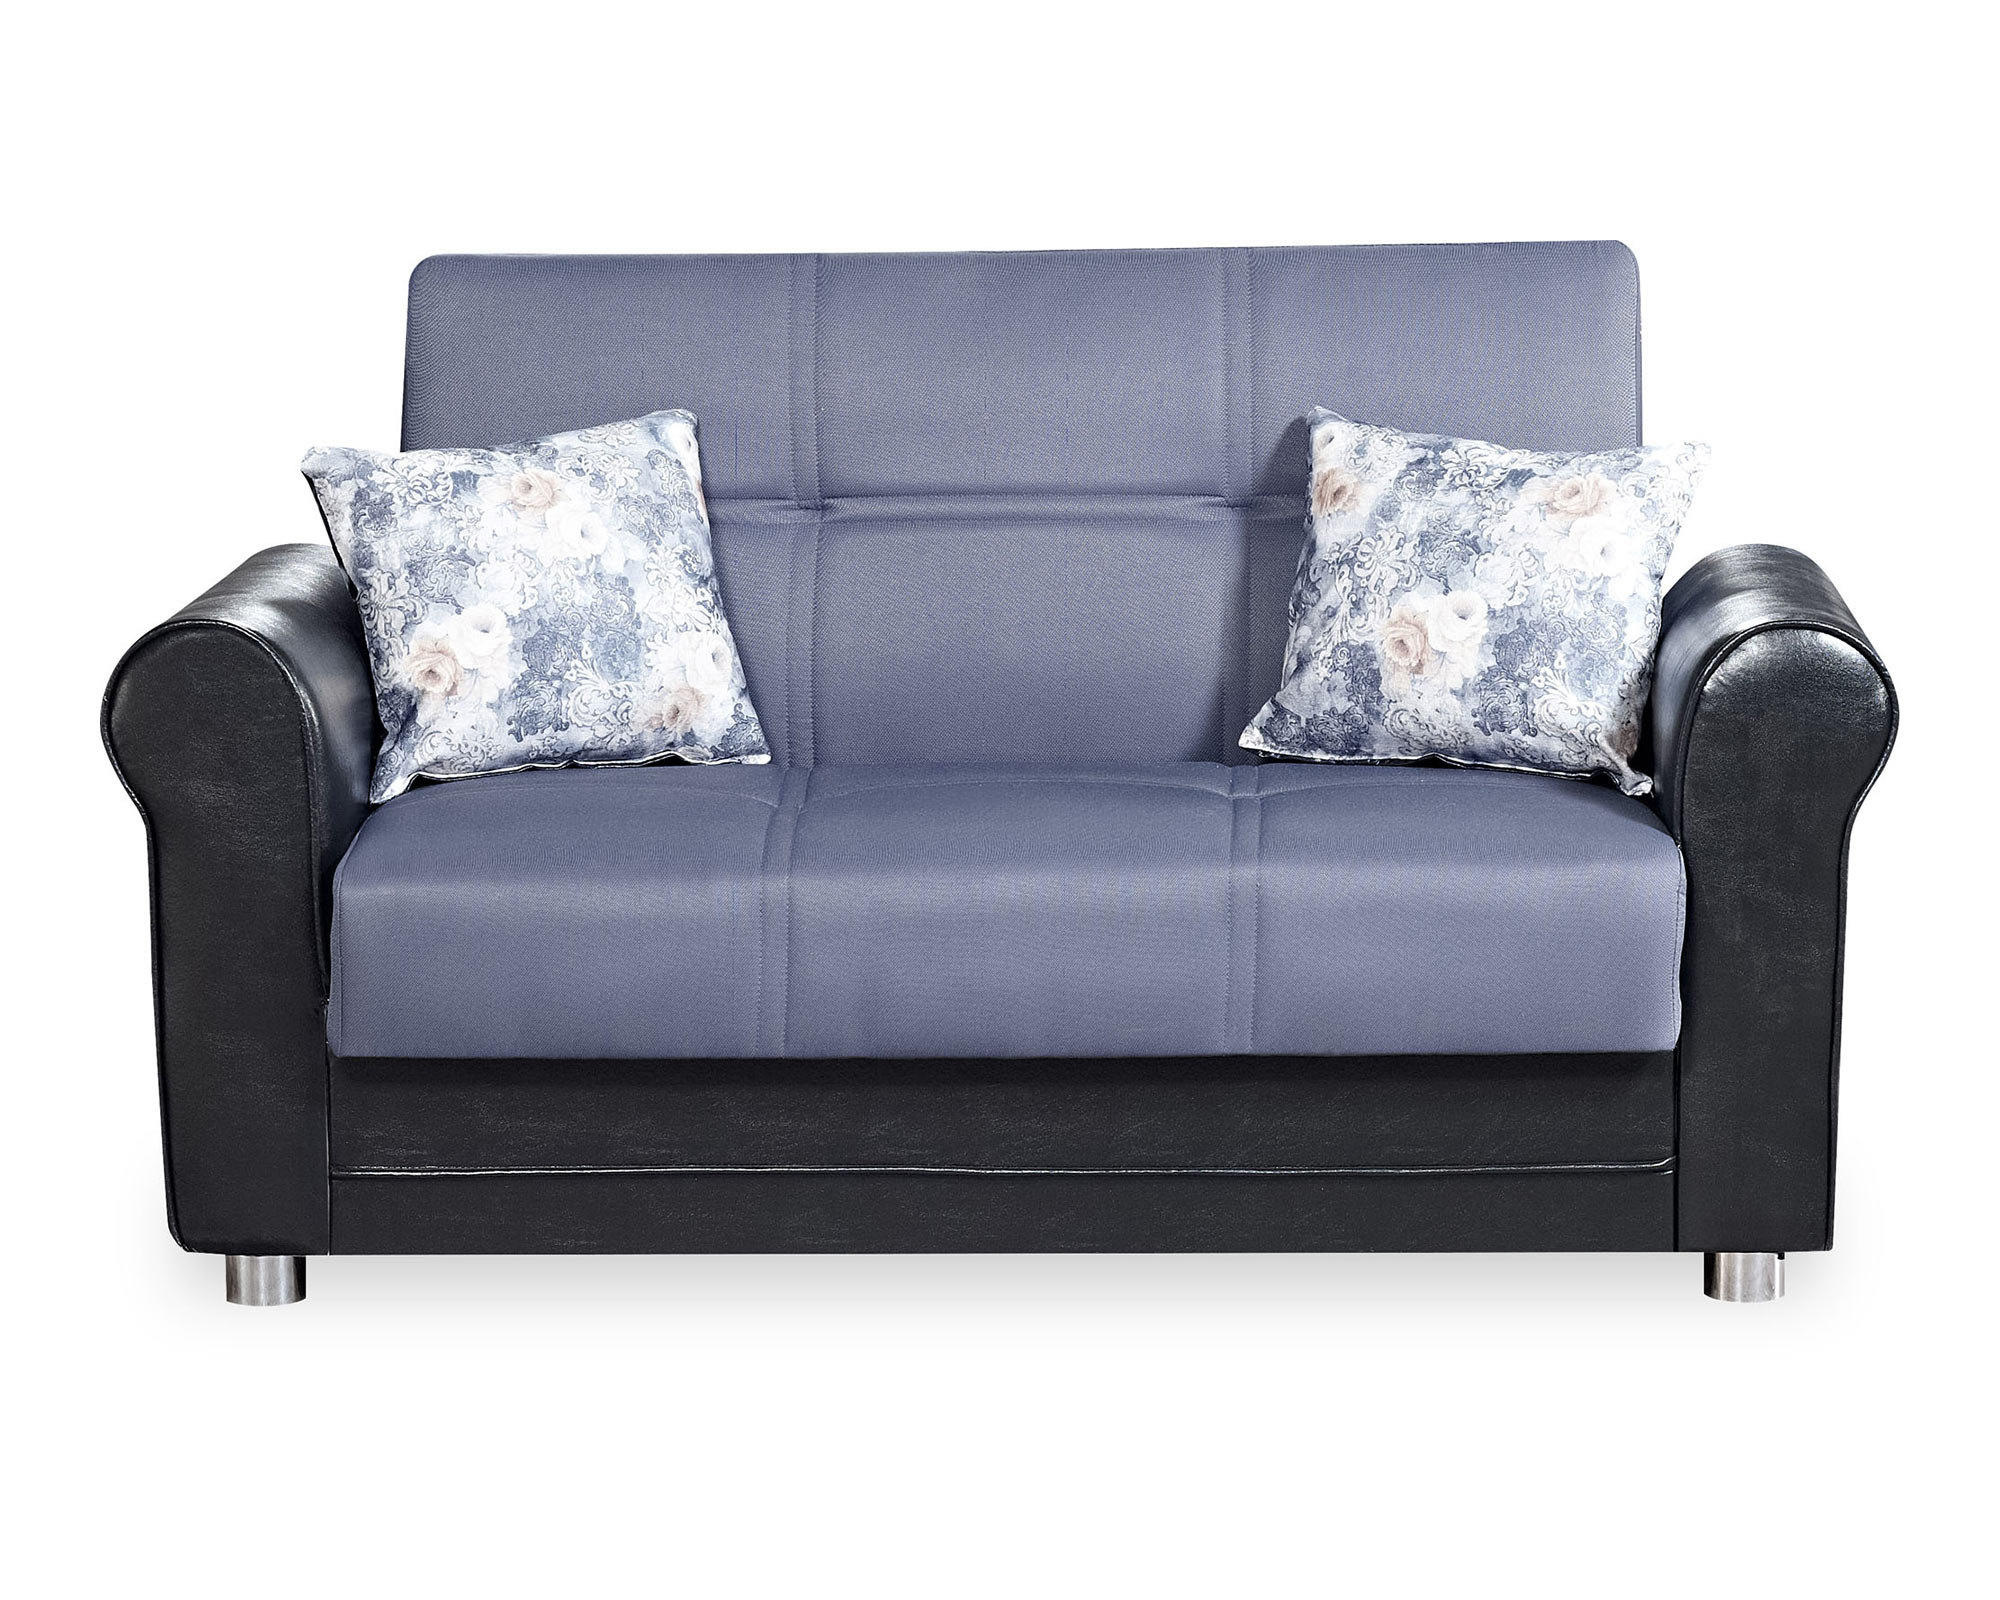 Fine Avalon Plus Gray Convertible Loveseat By Casamode Cjindustries Chair Design For Home Cjindustriesco